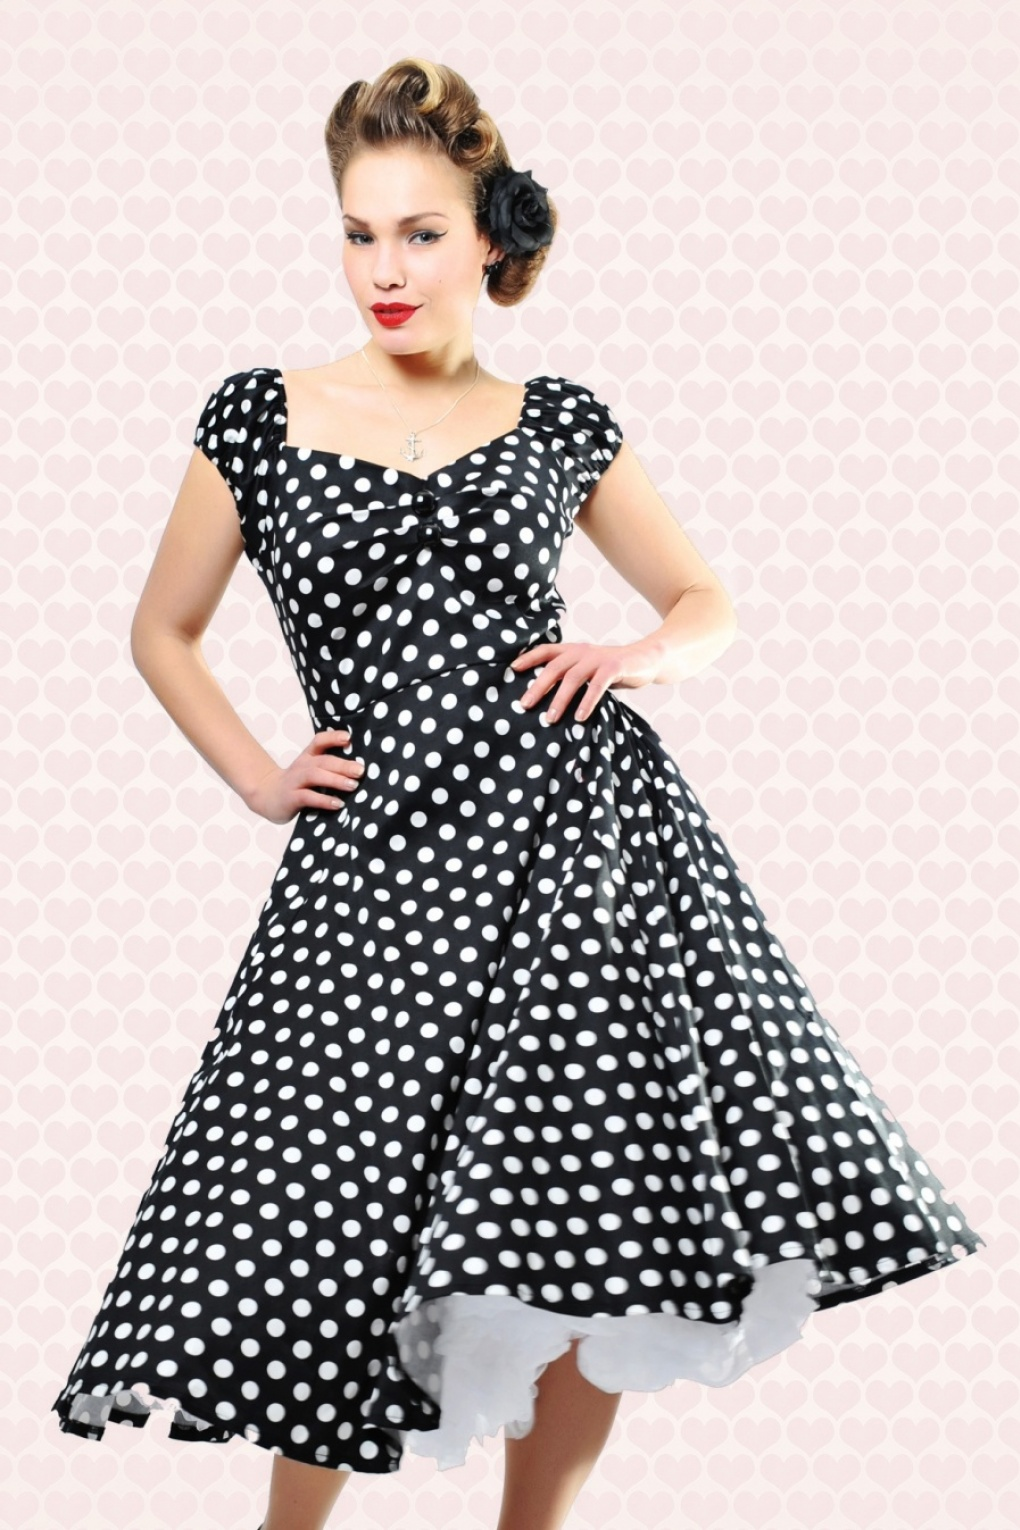 1950s Polka Dot Dresses 50s Dolores Doll dress Black White polka swing dress £60.09 AT vintagedancer.com